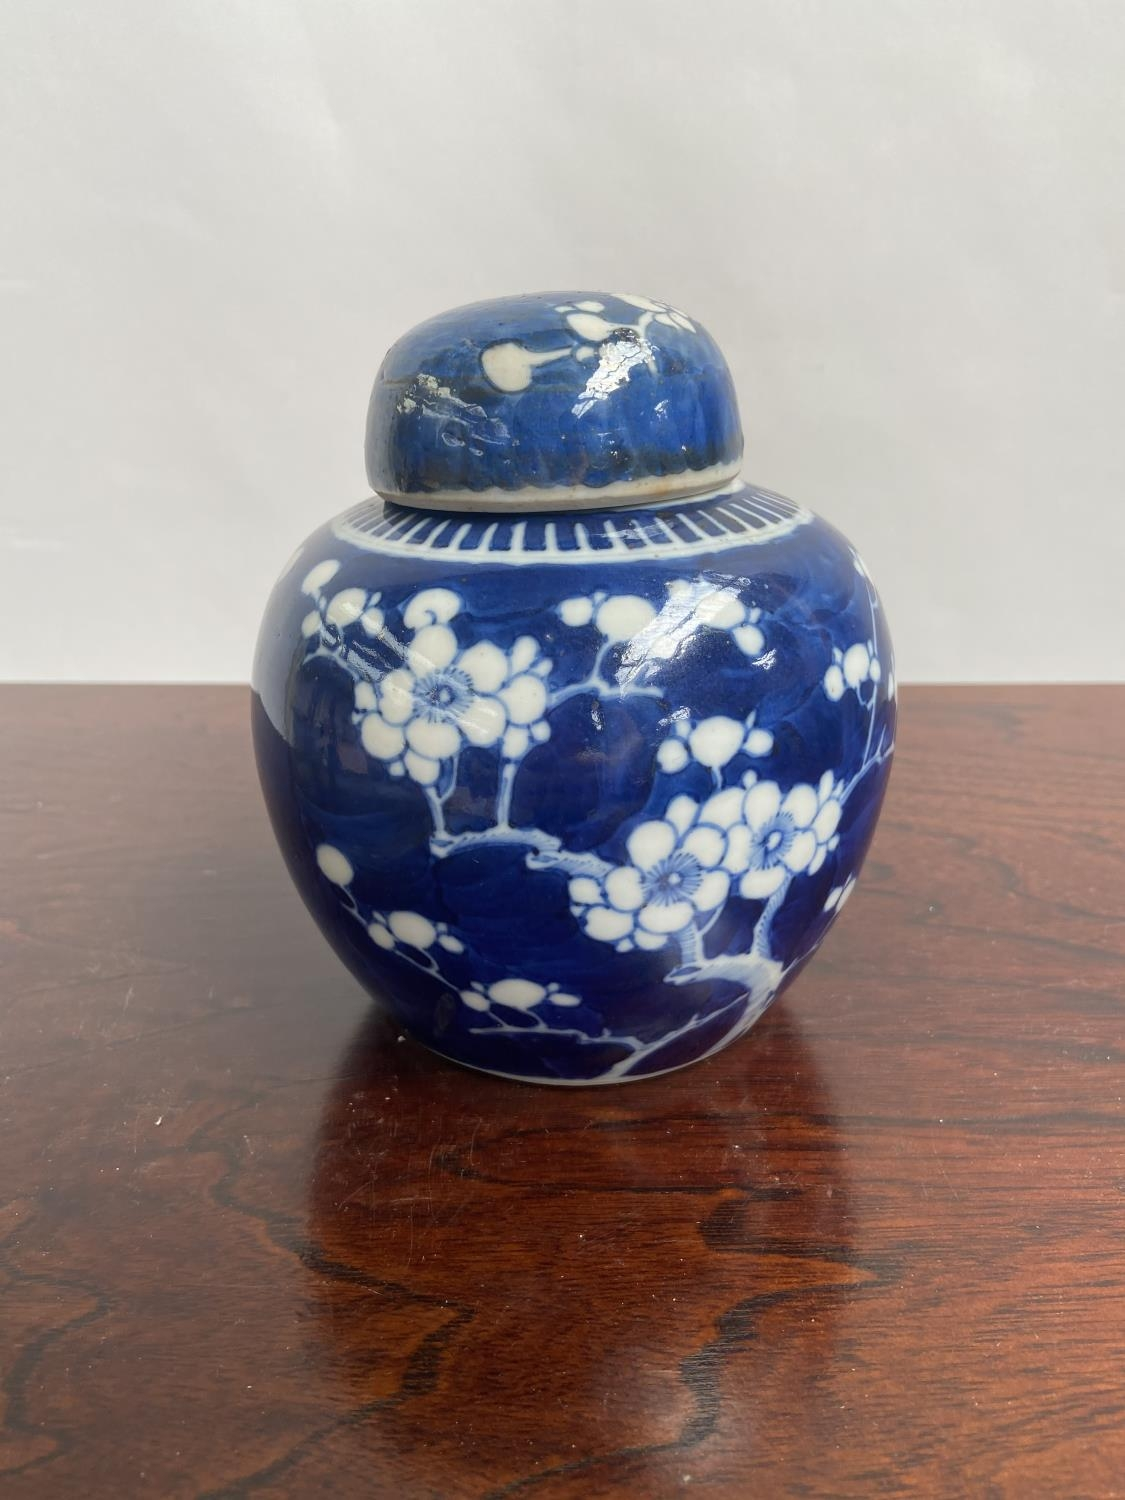 A Chinese blue and white preserve pot with lid, designed with cherry blossoms & double ring